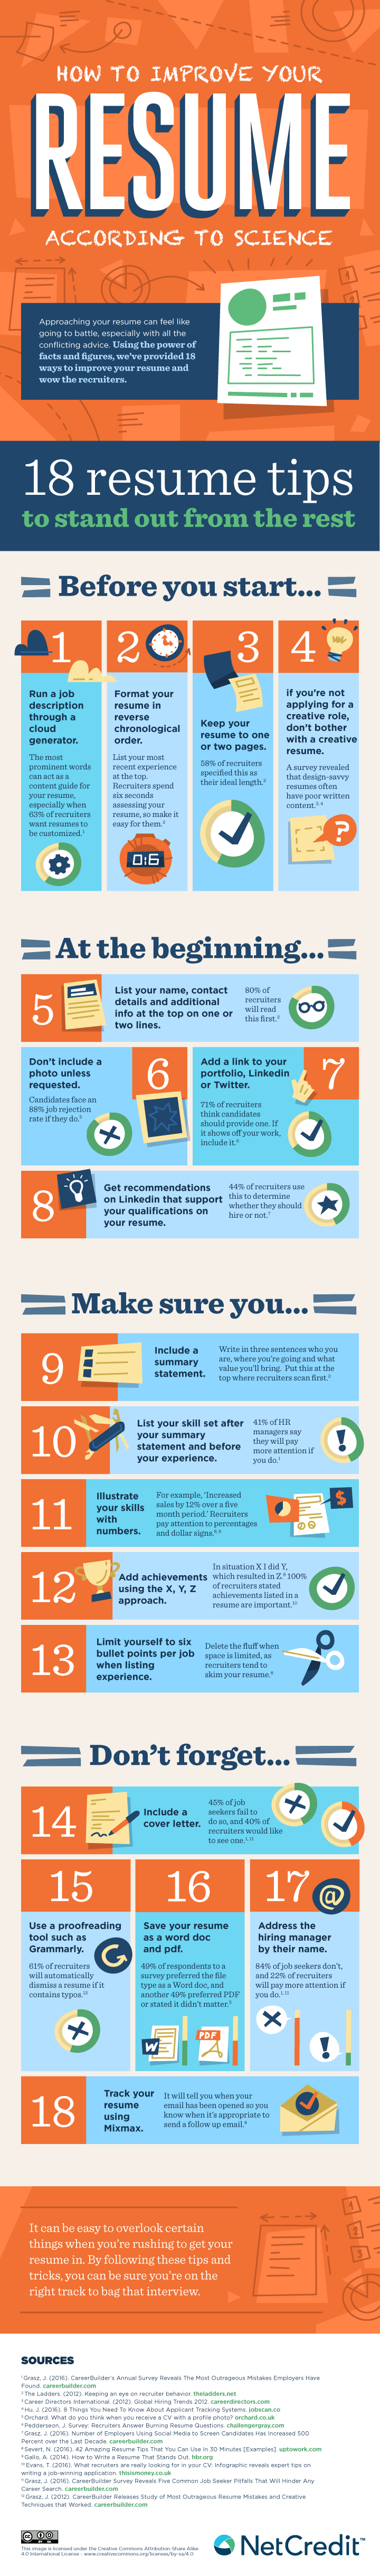 How to improve your resume according to science NetCredit infographic